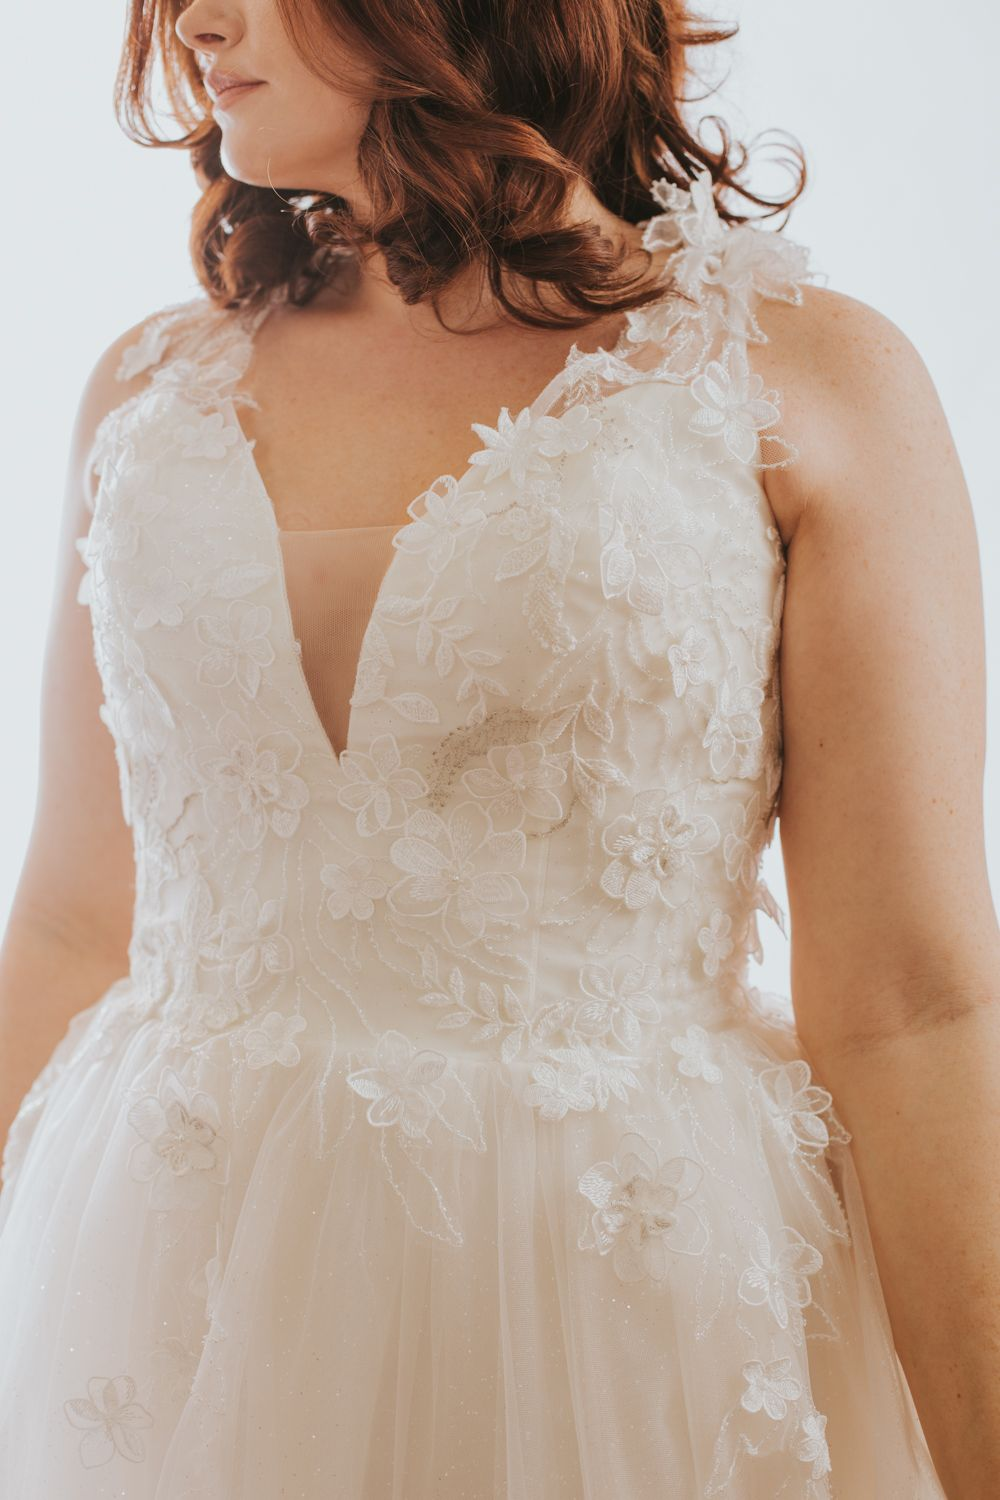 47+ Whimsical wedding dress plus size ideas in 2021